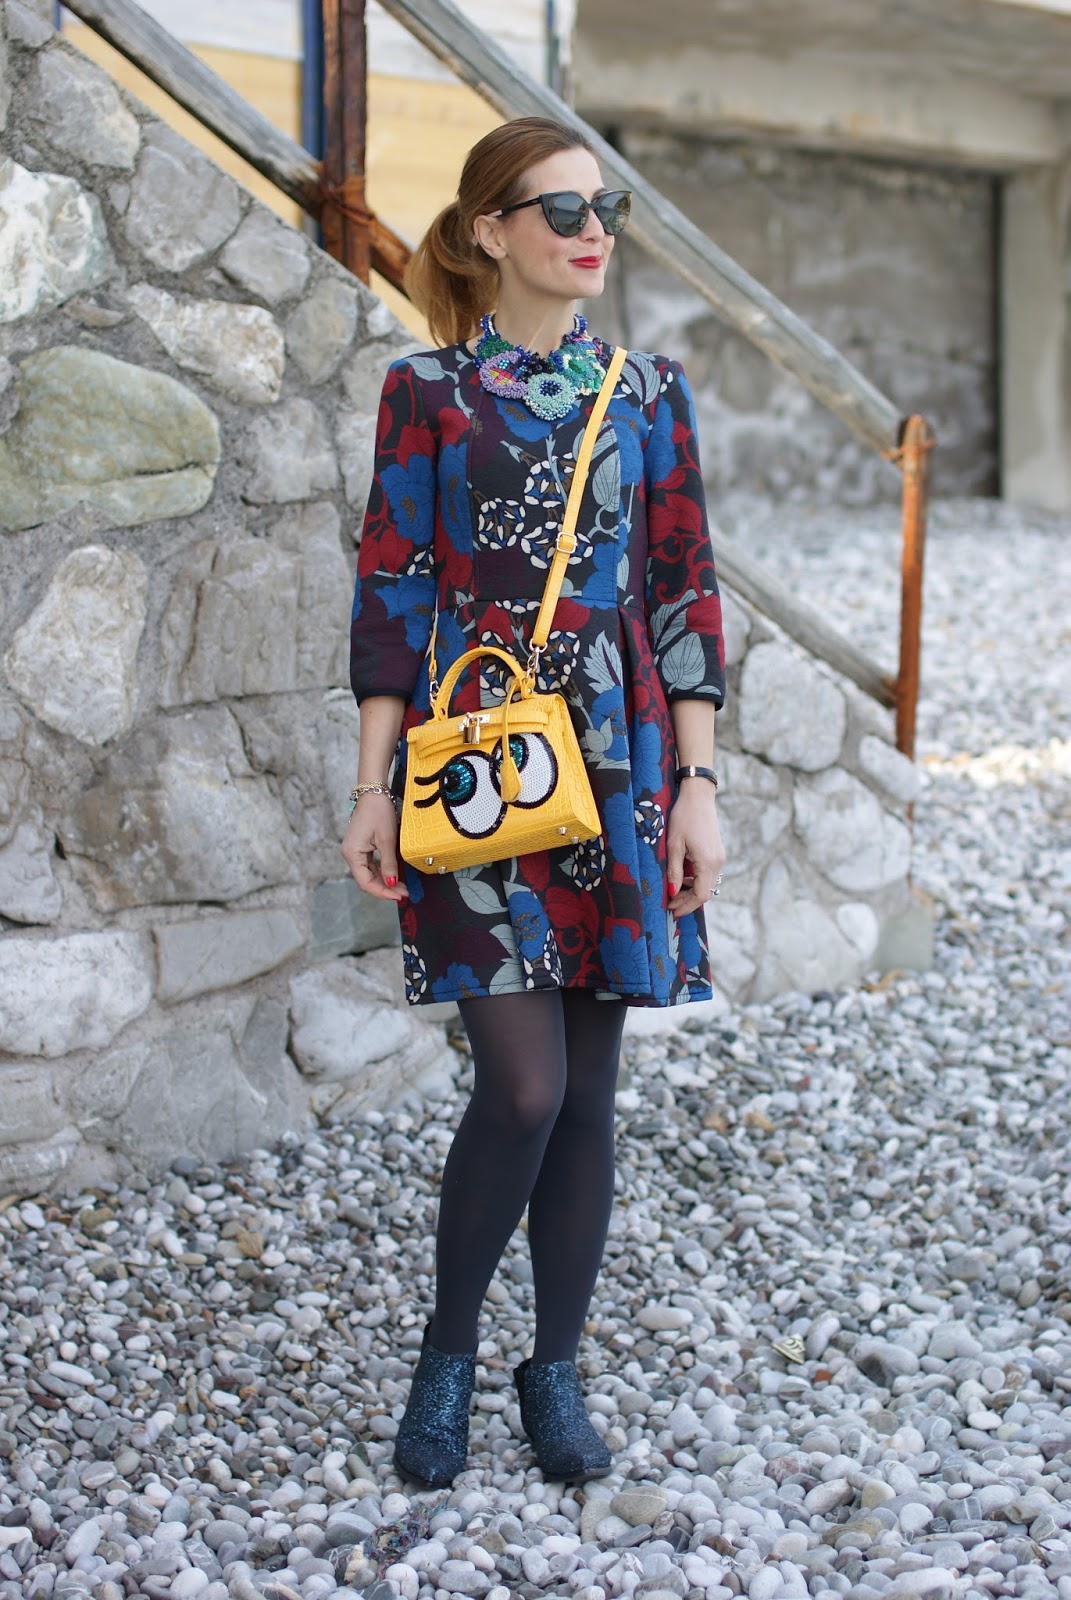 Fleece dress, abito in felpa, PLAYNOMORE SHYGIRL bag in yellow buttercup on Fashion and Cookies fashion blog, fashion blogger style